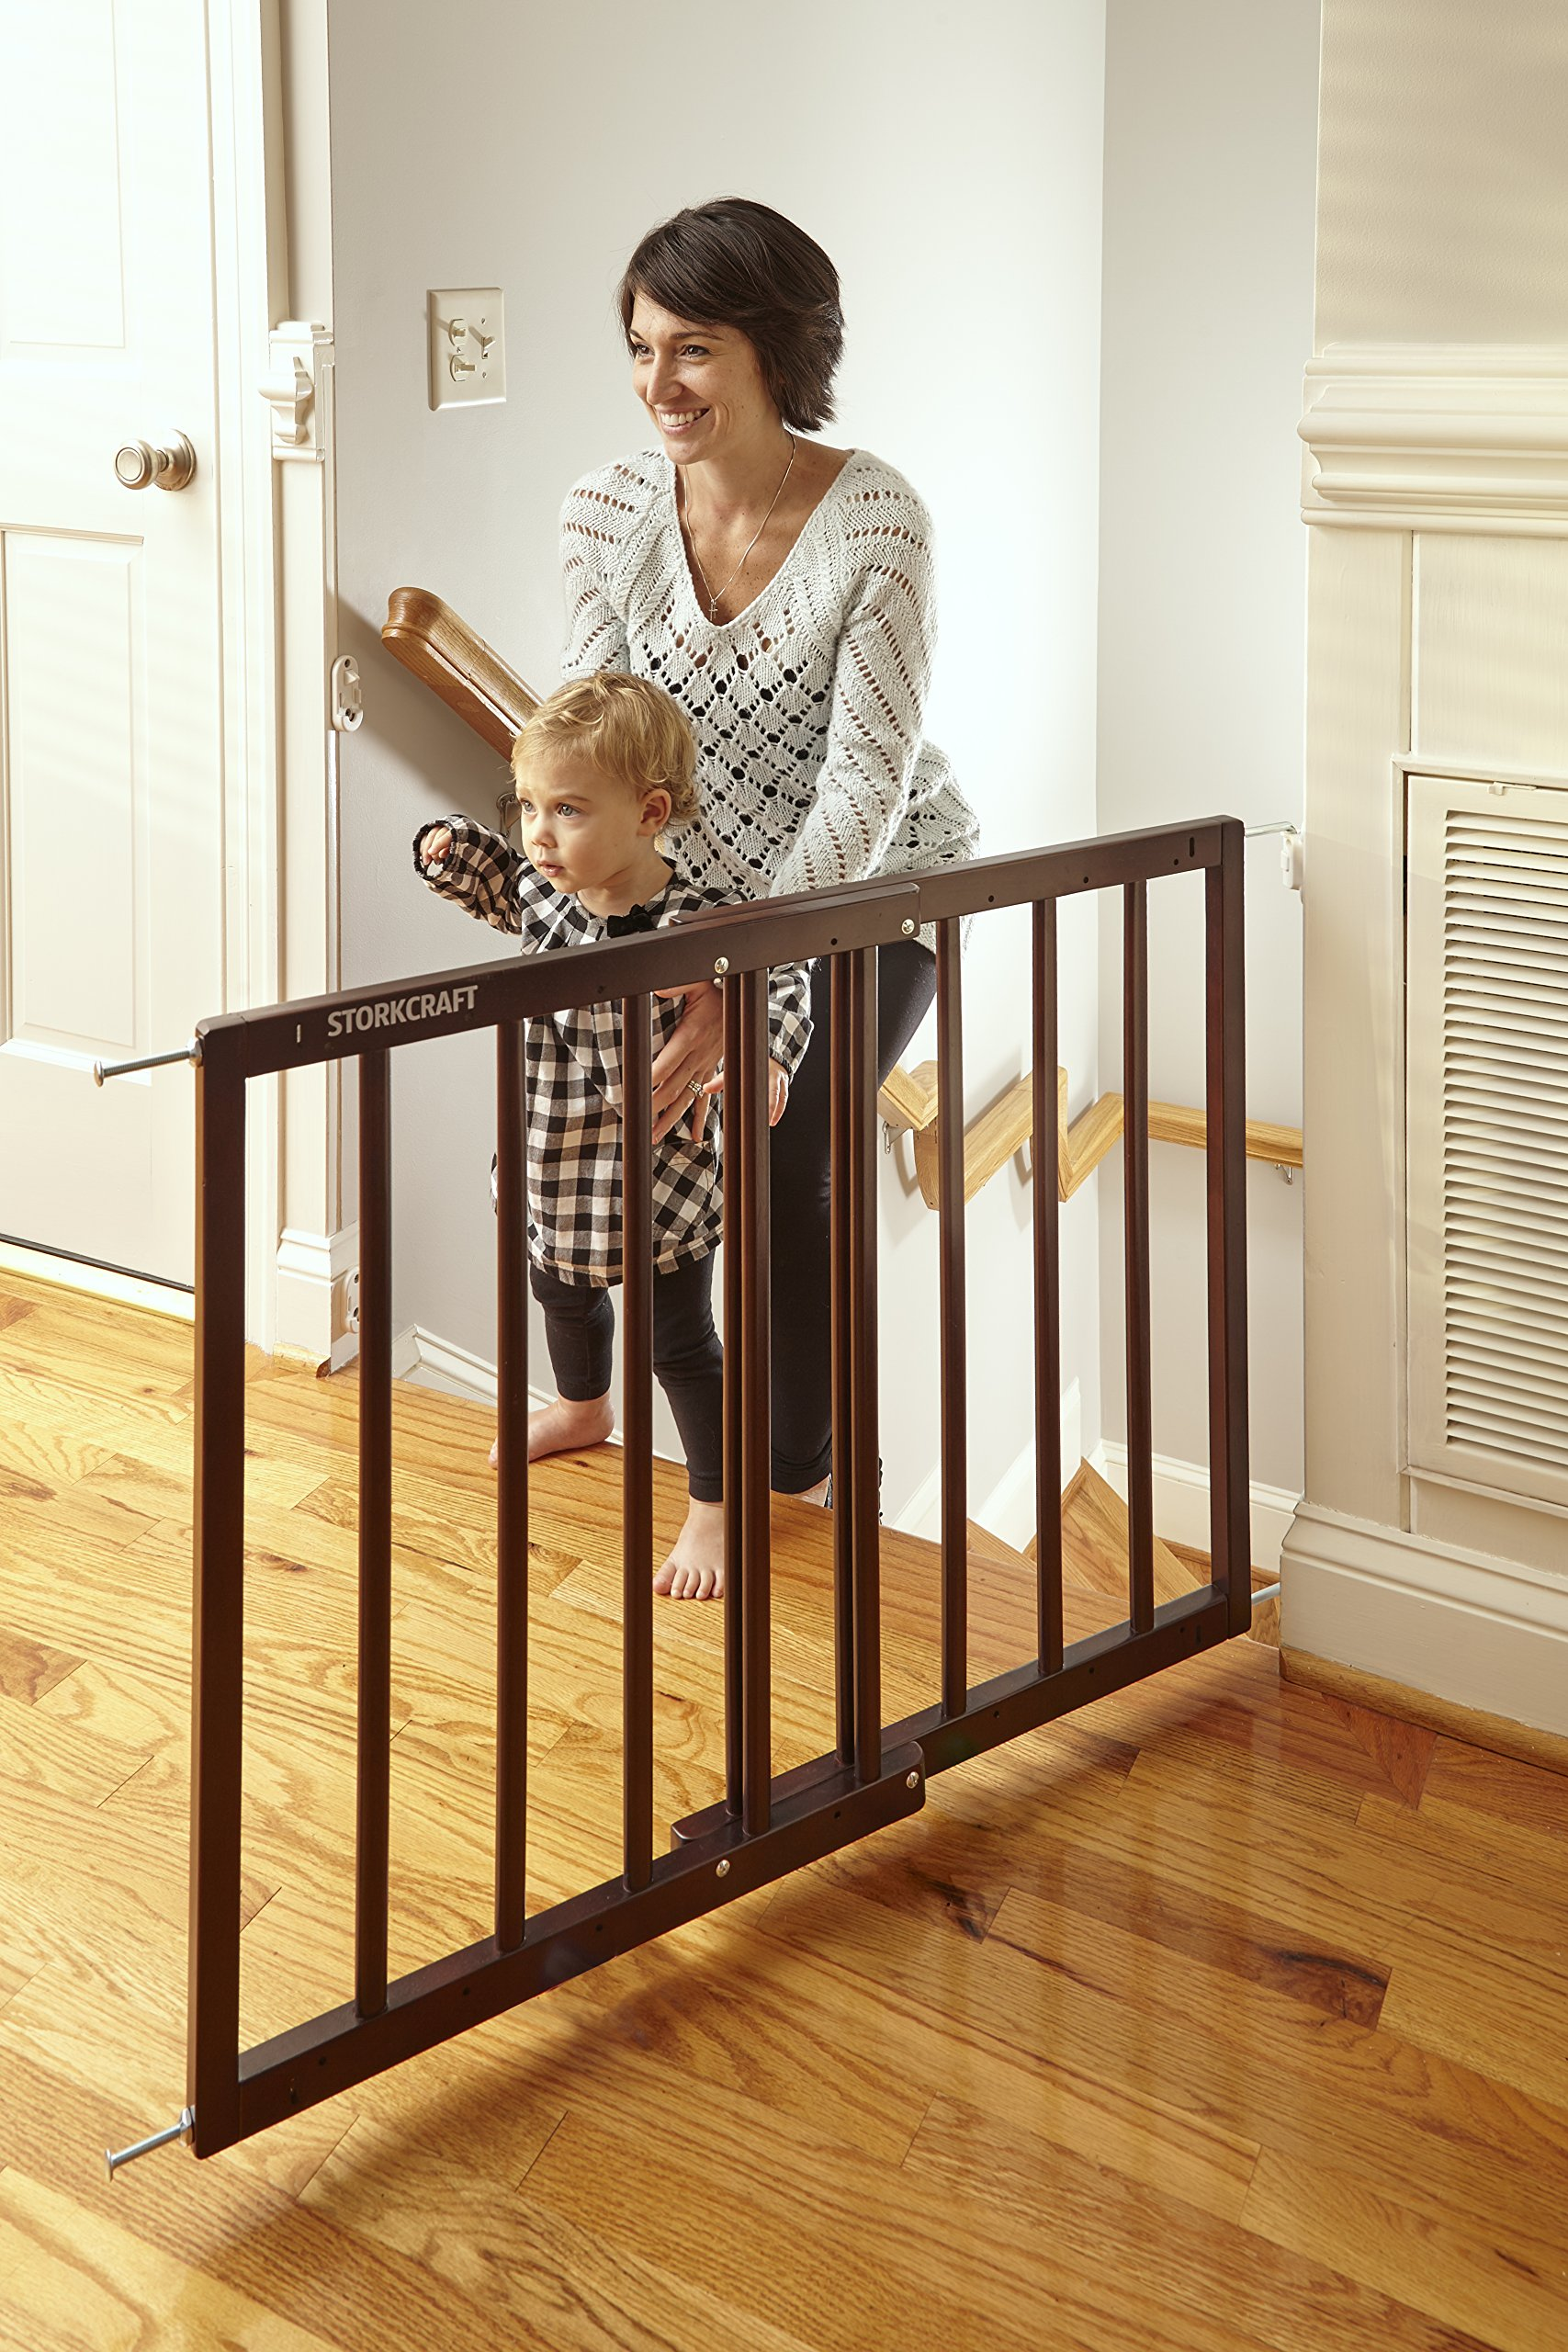 Storkcraft Easy Walk-Thru Wooden Safety Gate, Espresso Adjustable Baby Safety Gate For Doorways and Stairs, Great for Children and Pets by Stork Craft (Image #11)